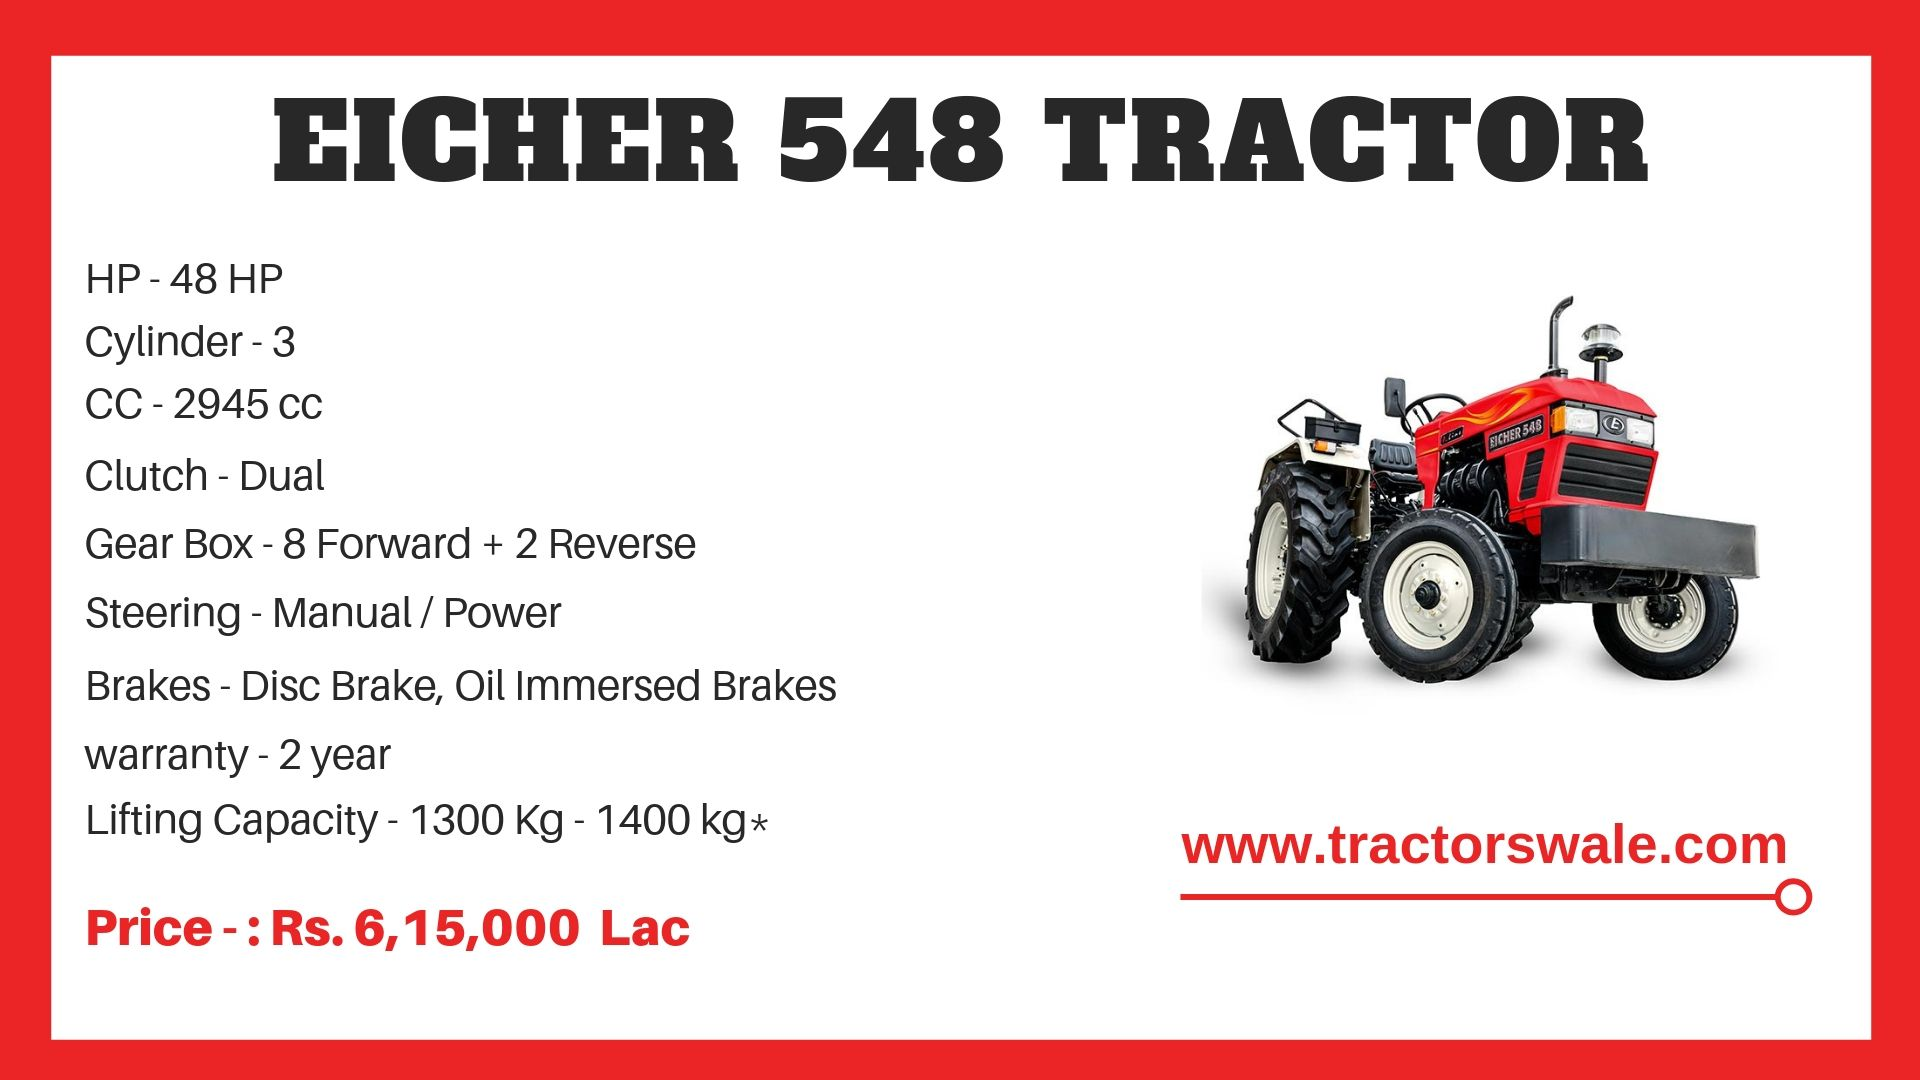 Eicher Tractor 548 Specifications